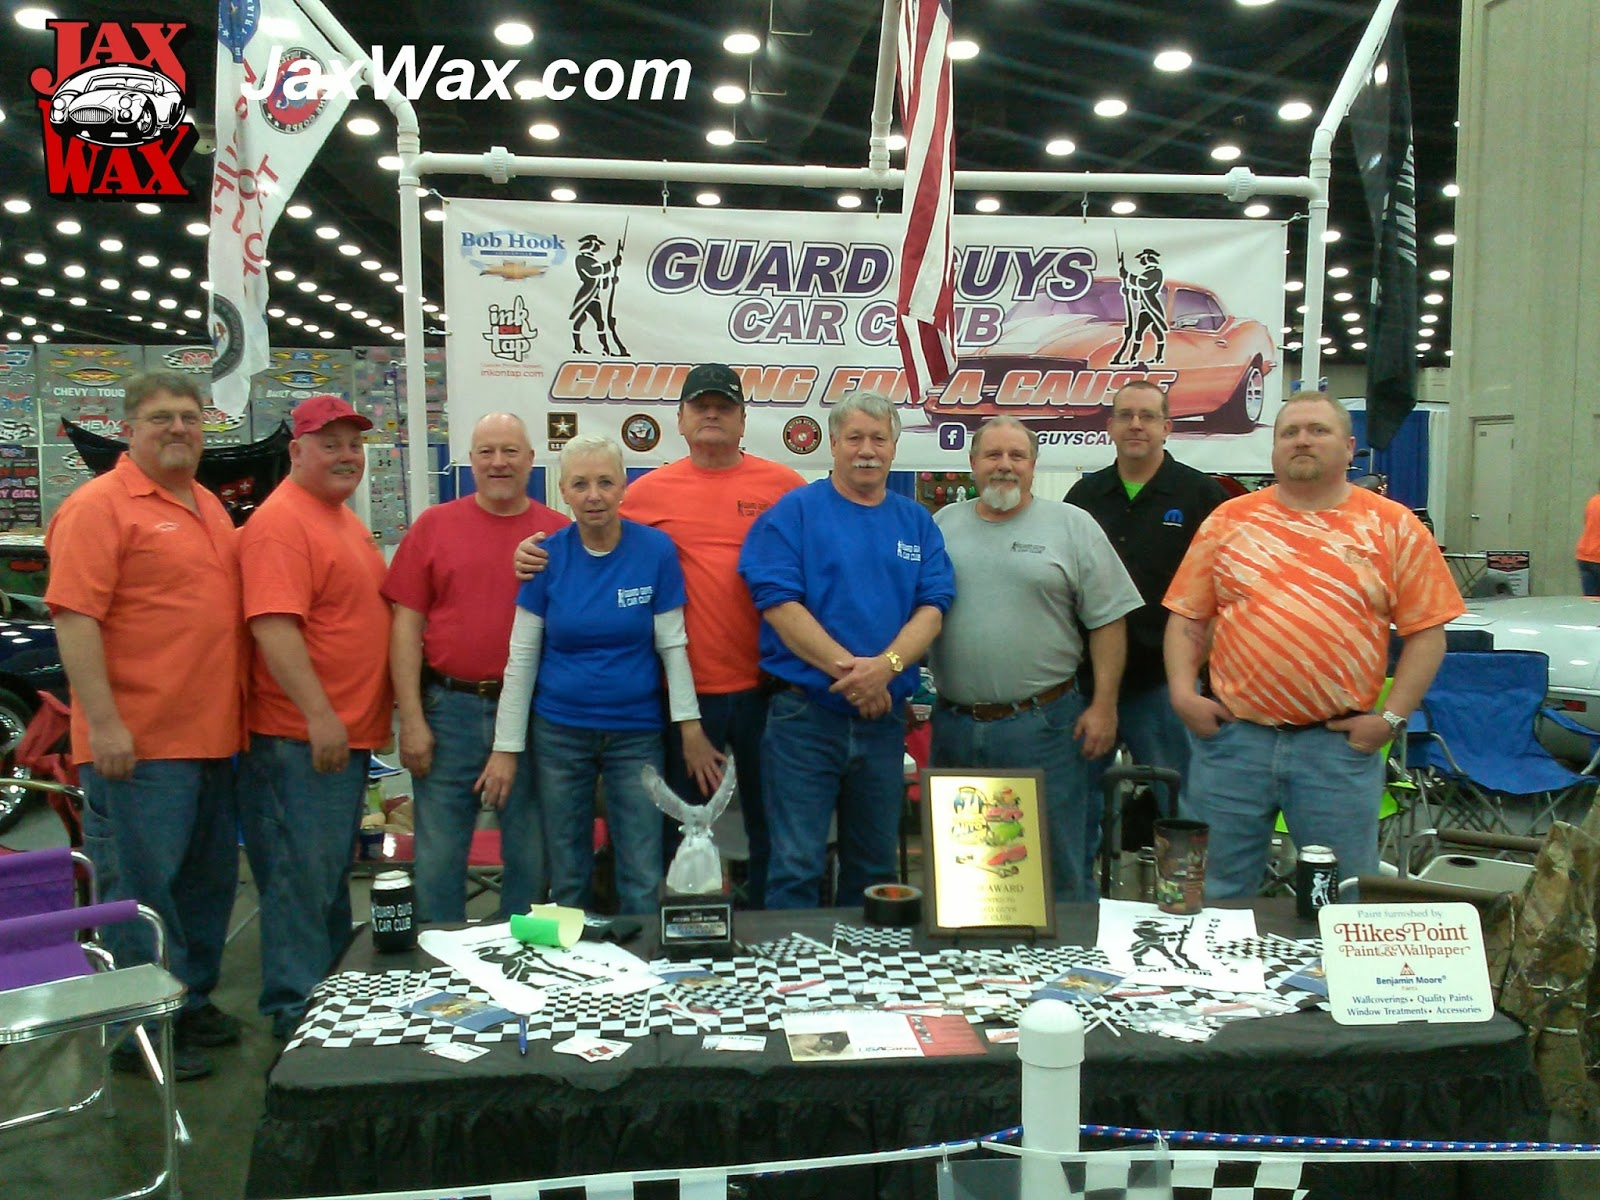 Guard Guys Car Club Carl Casper Auto Show Jax Wax Customer